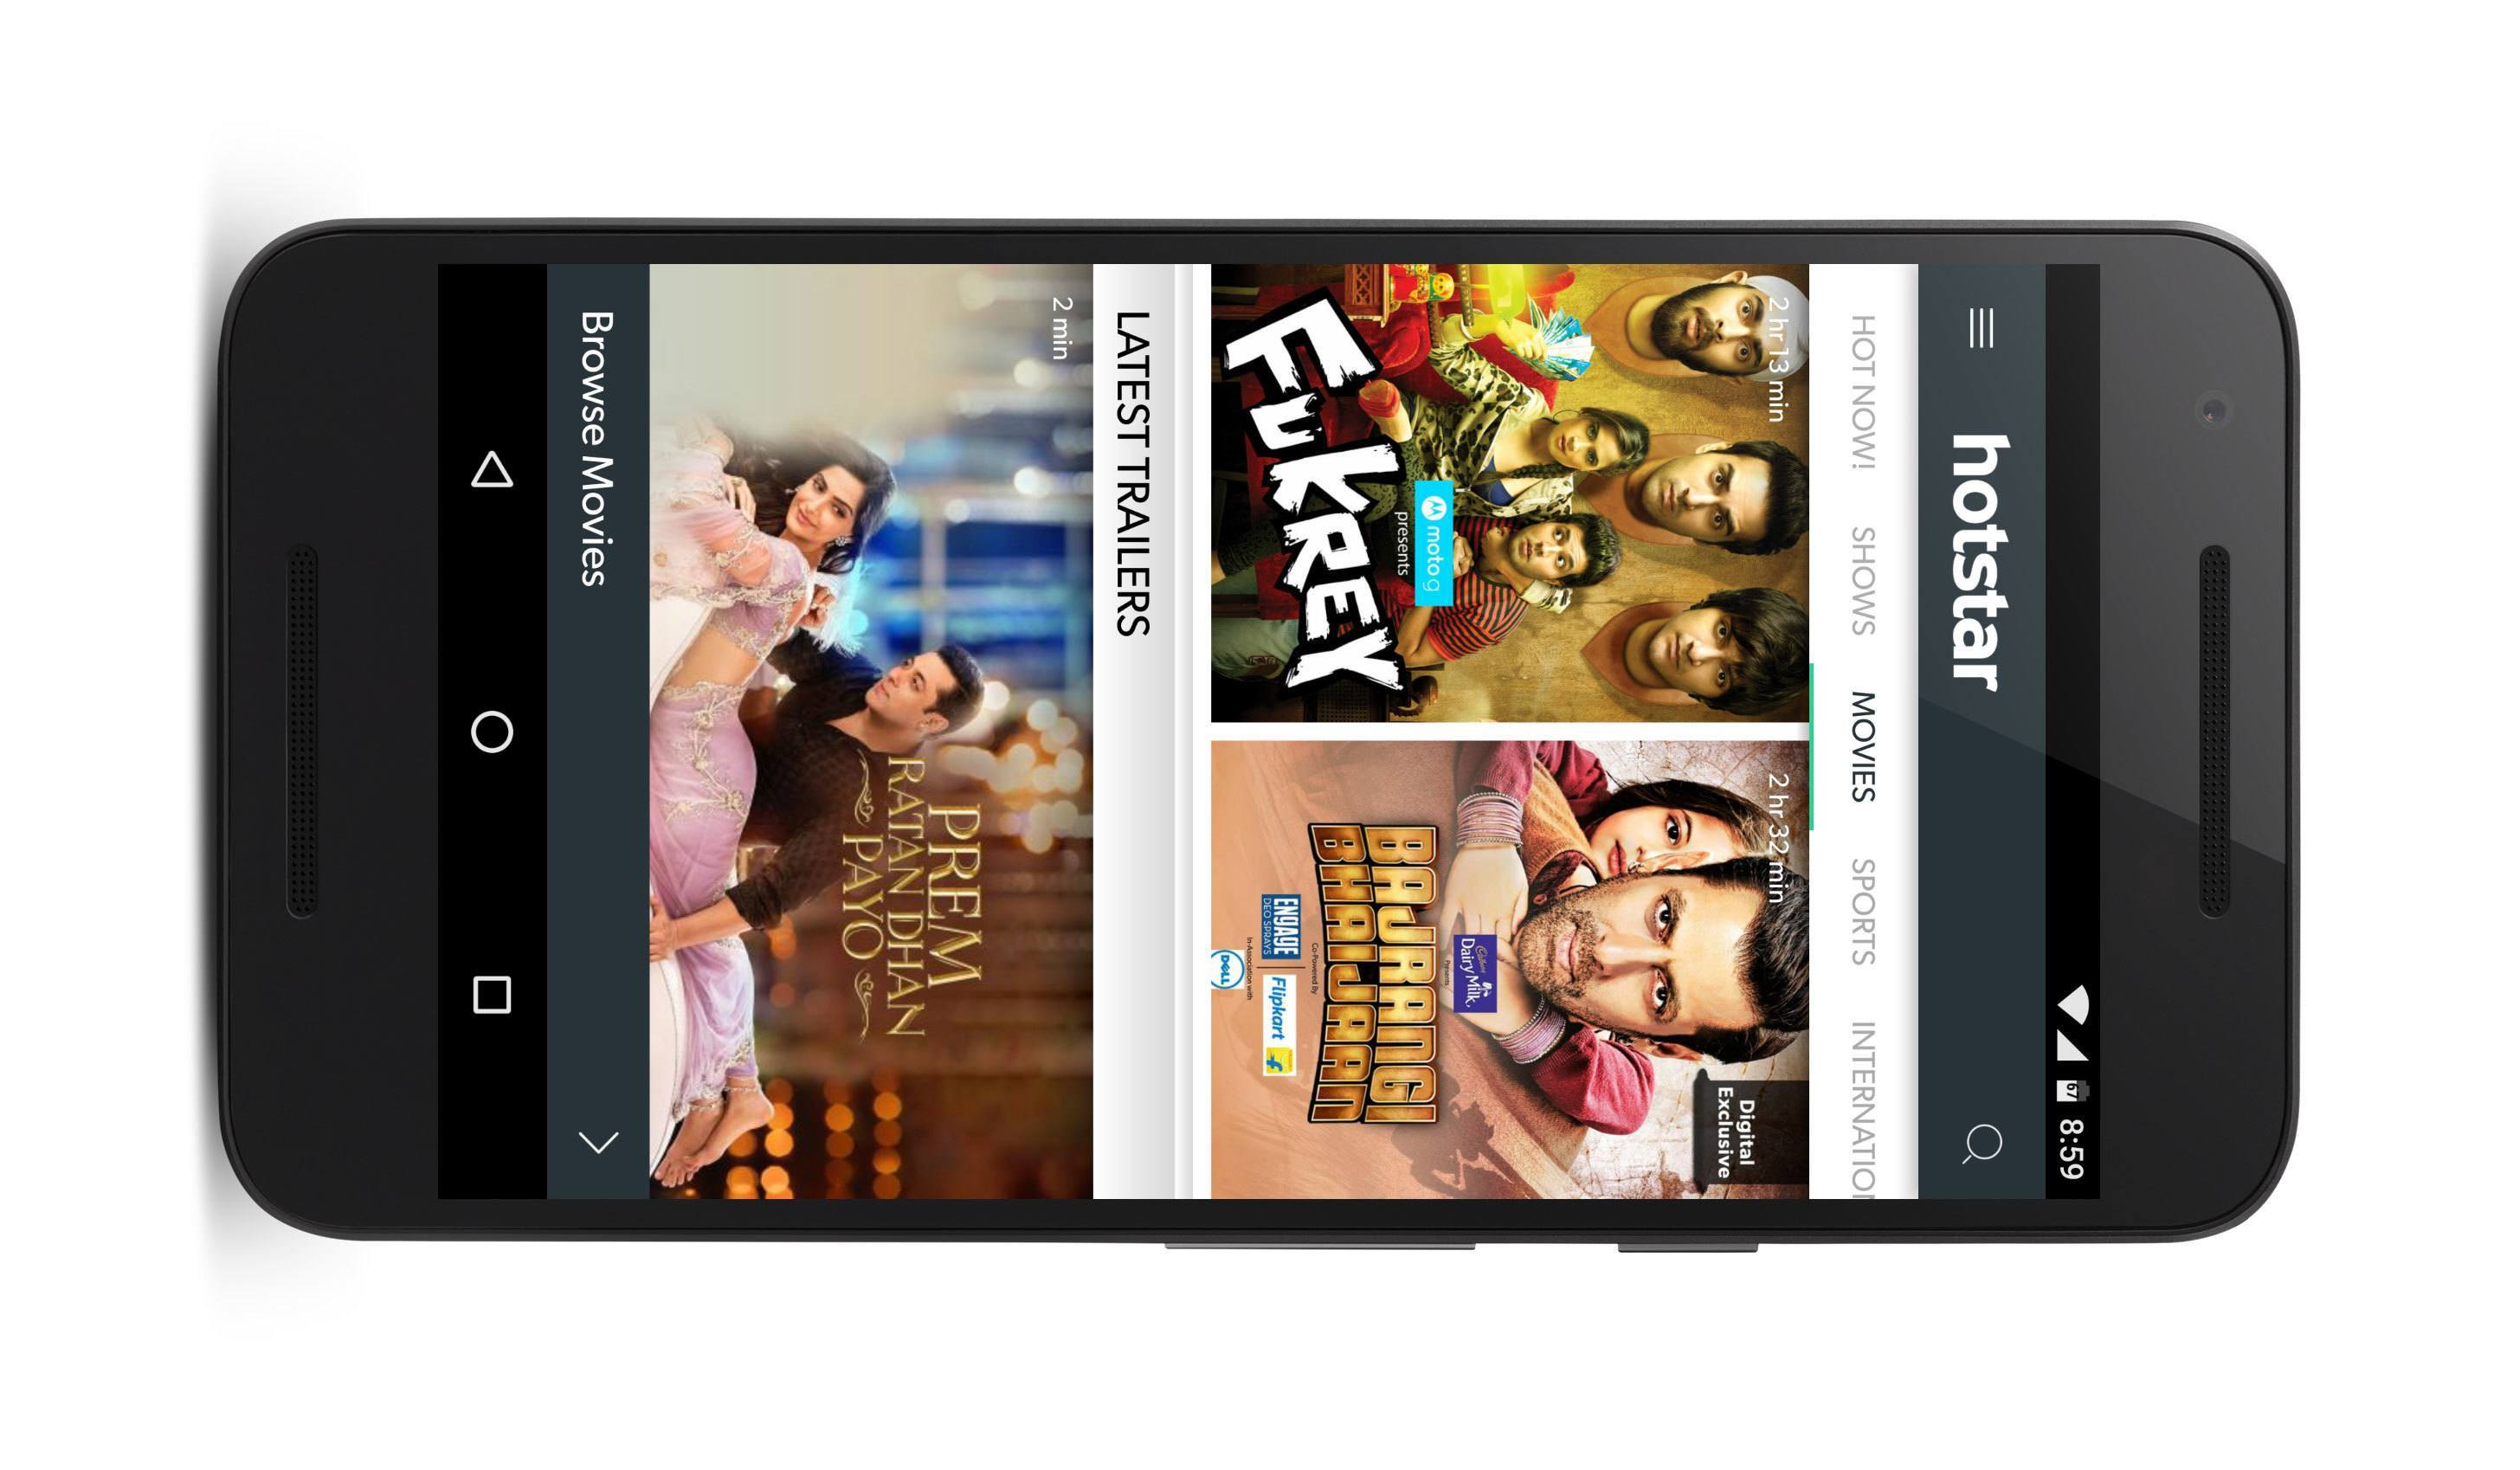 hotstar live tv android app download